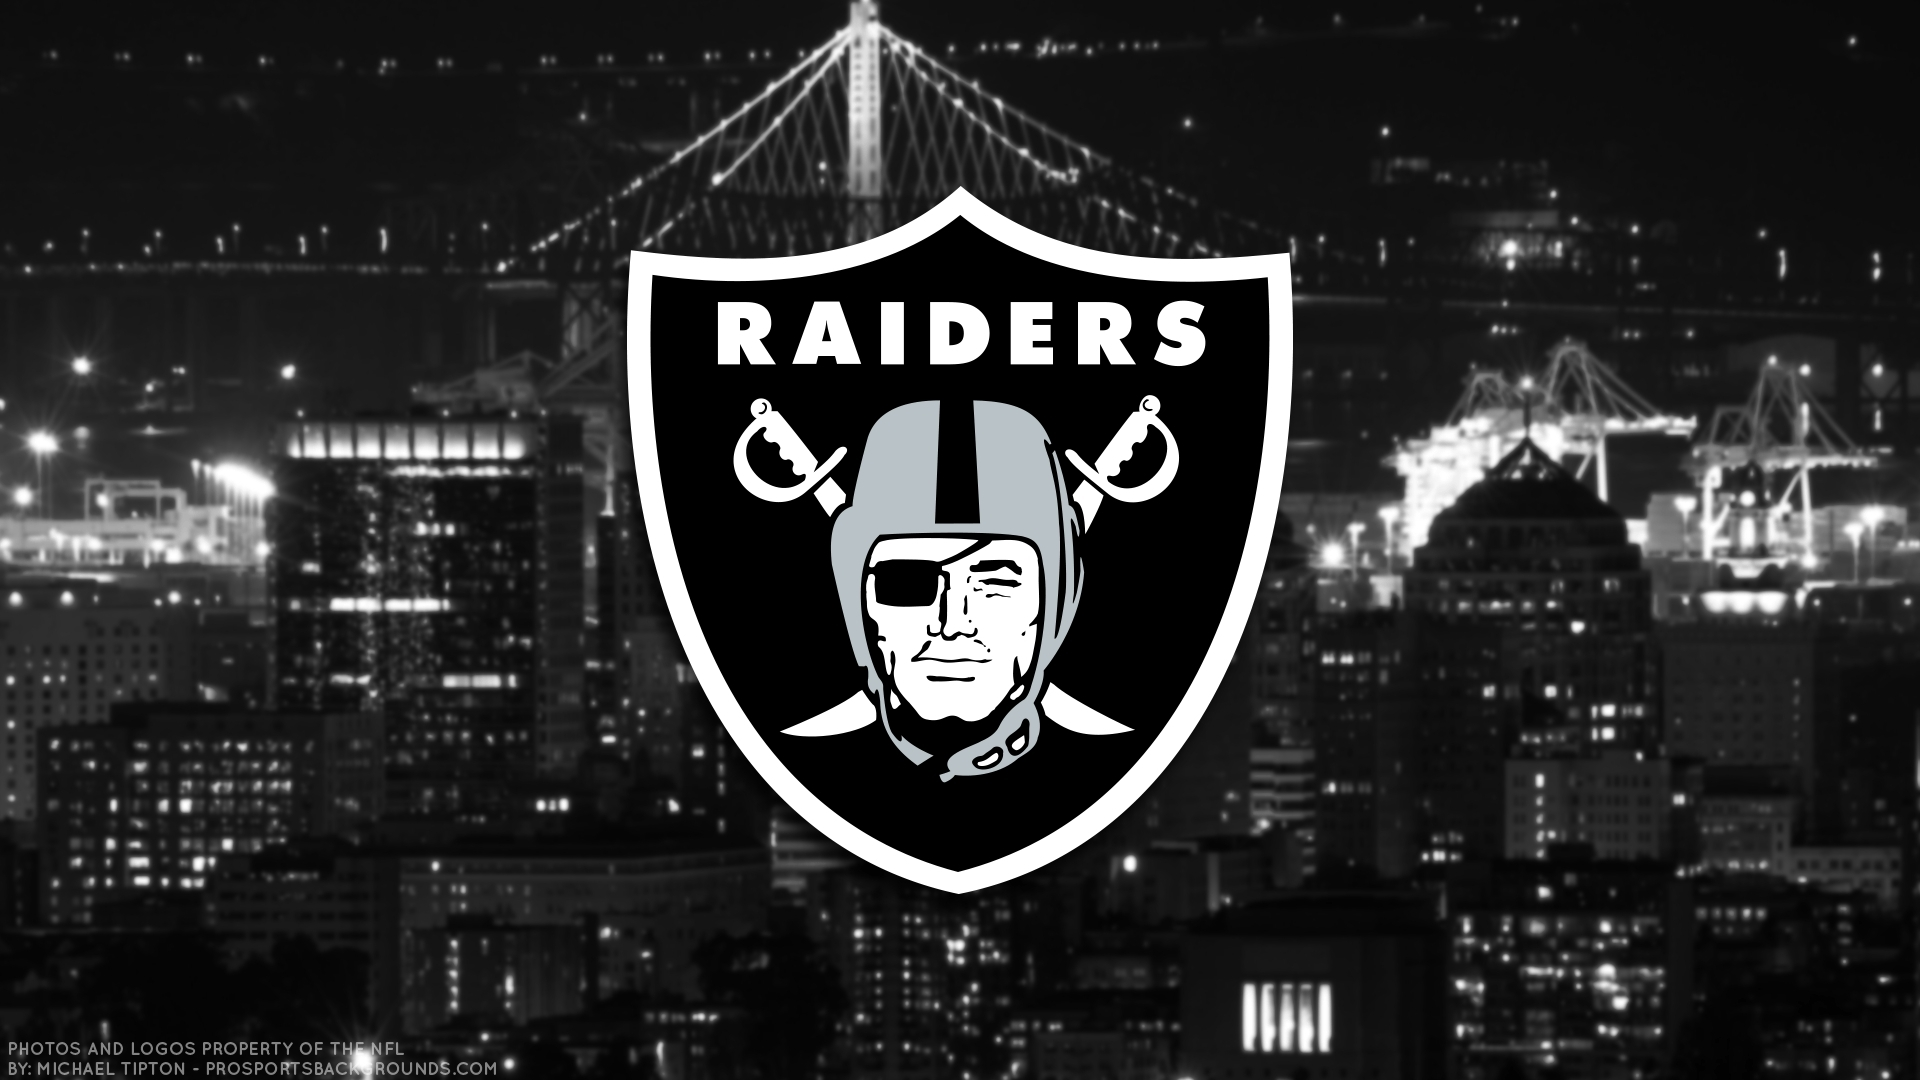 oakland raiders wallpaper high quality resolution of iphone